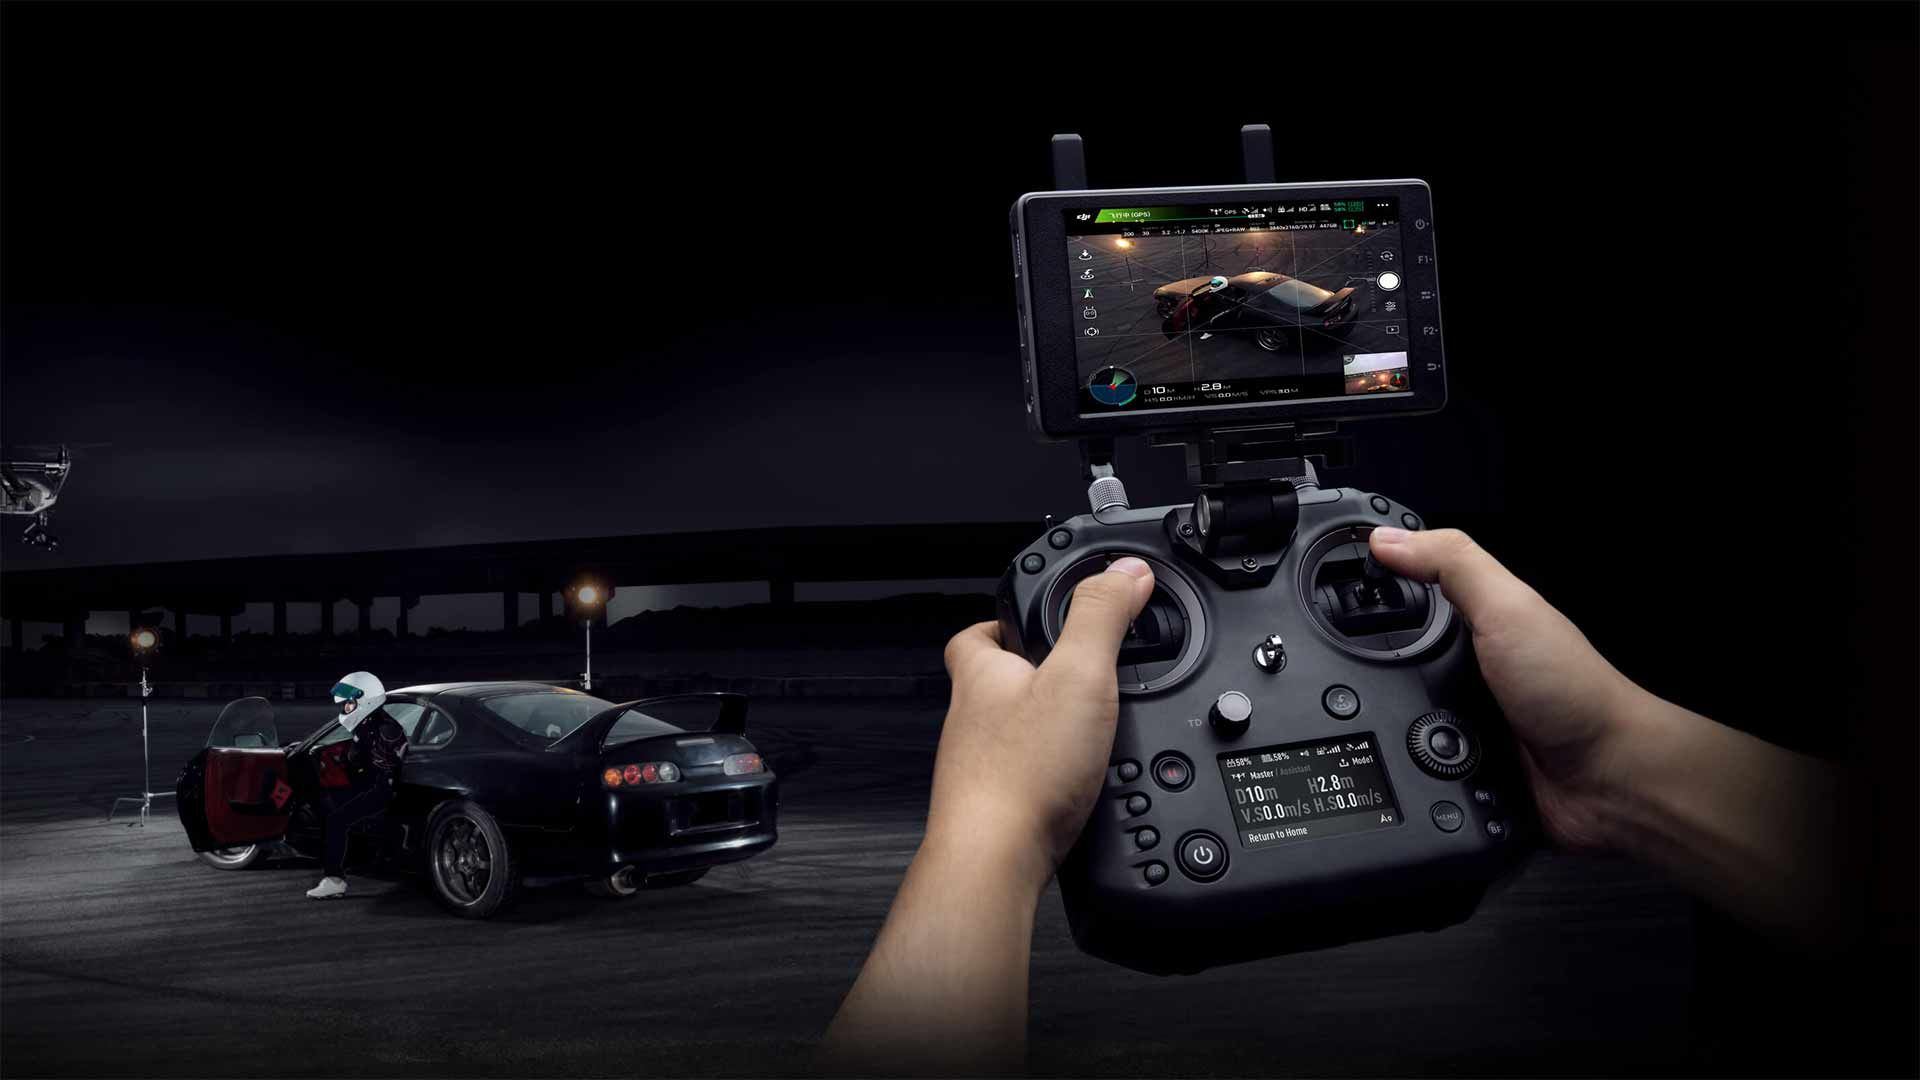 DJI CENDENCE INSPIRE 2 Remote controller for Professionals